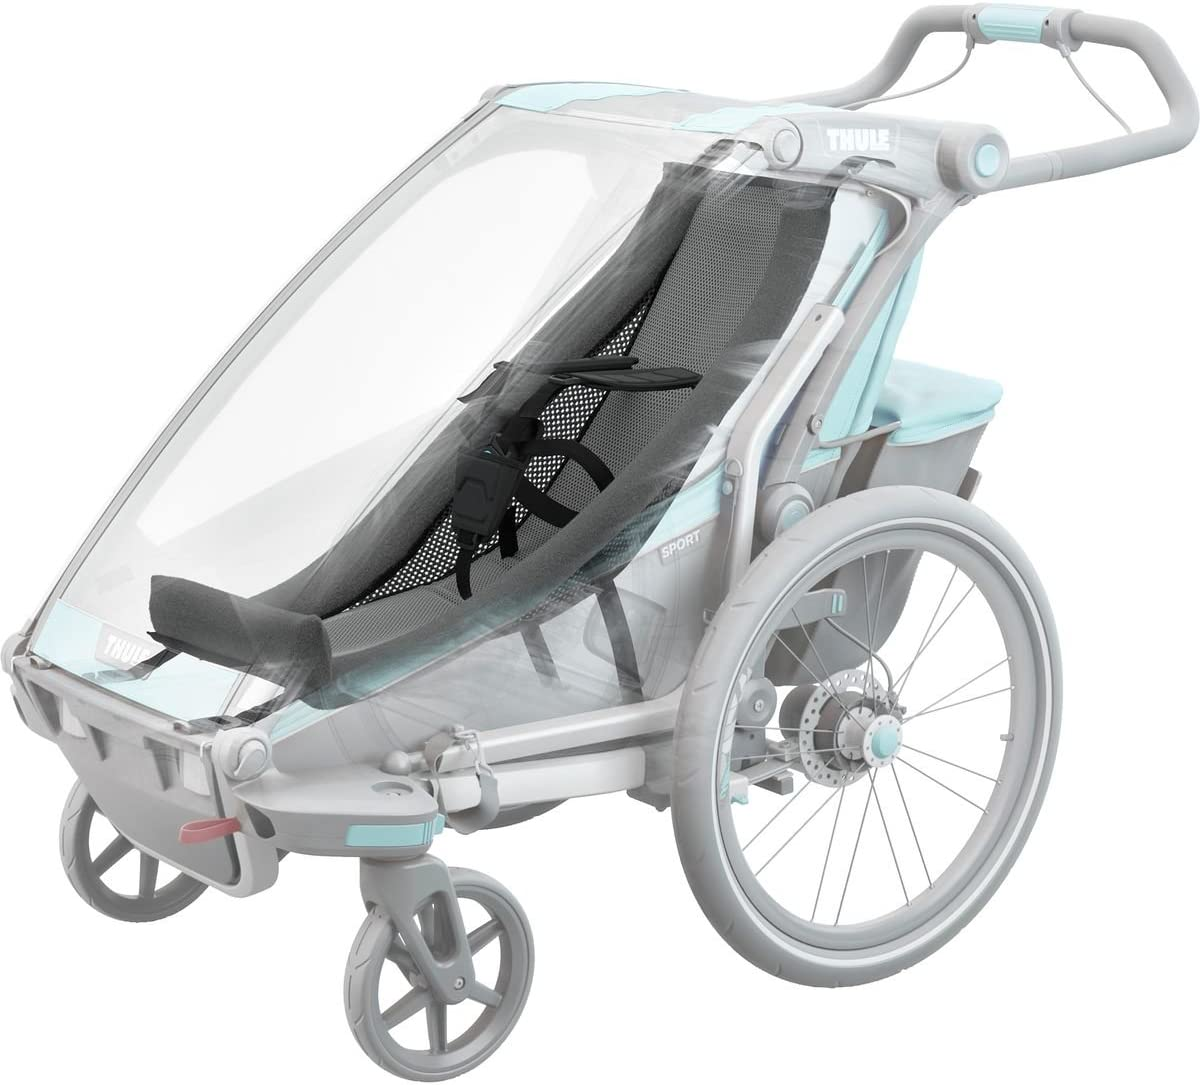 Cross 1-10 Months Lite Chariot Infant Baby Child Sling Thule Sport Cab